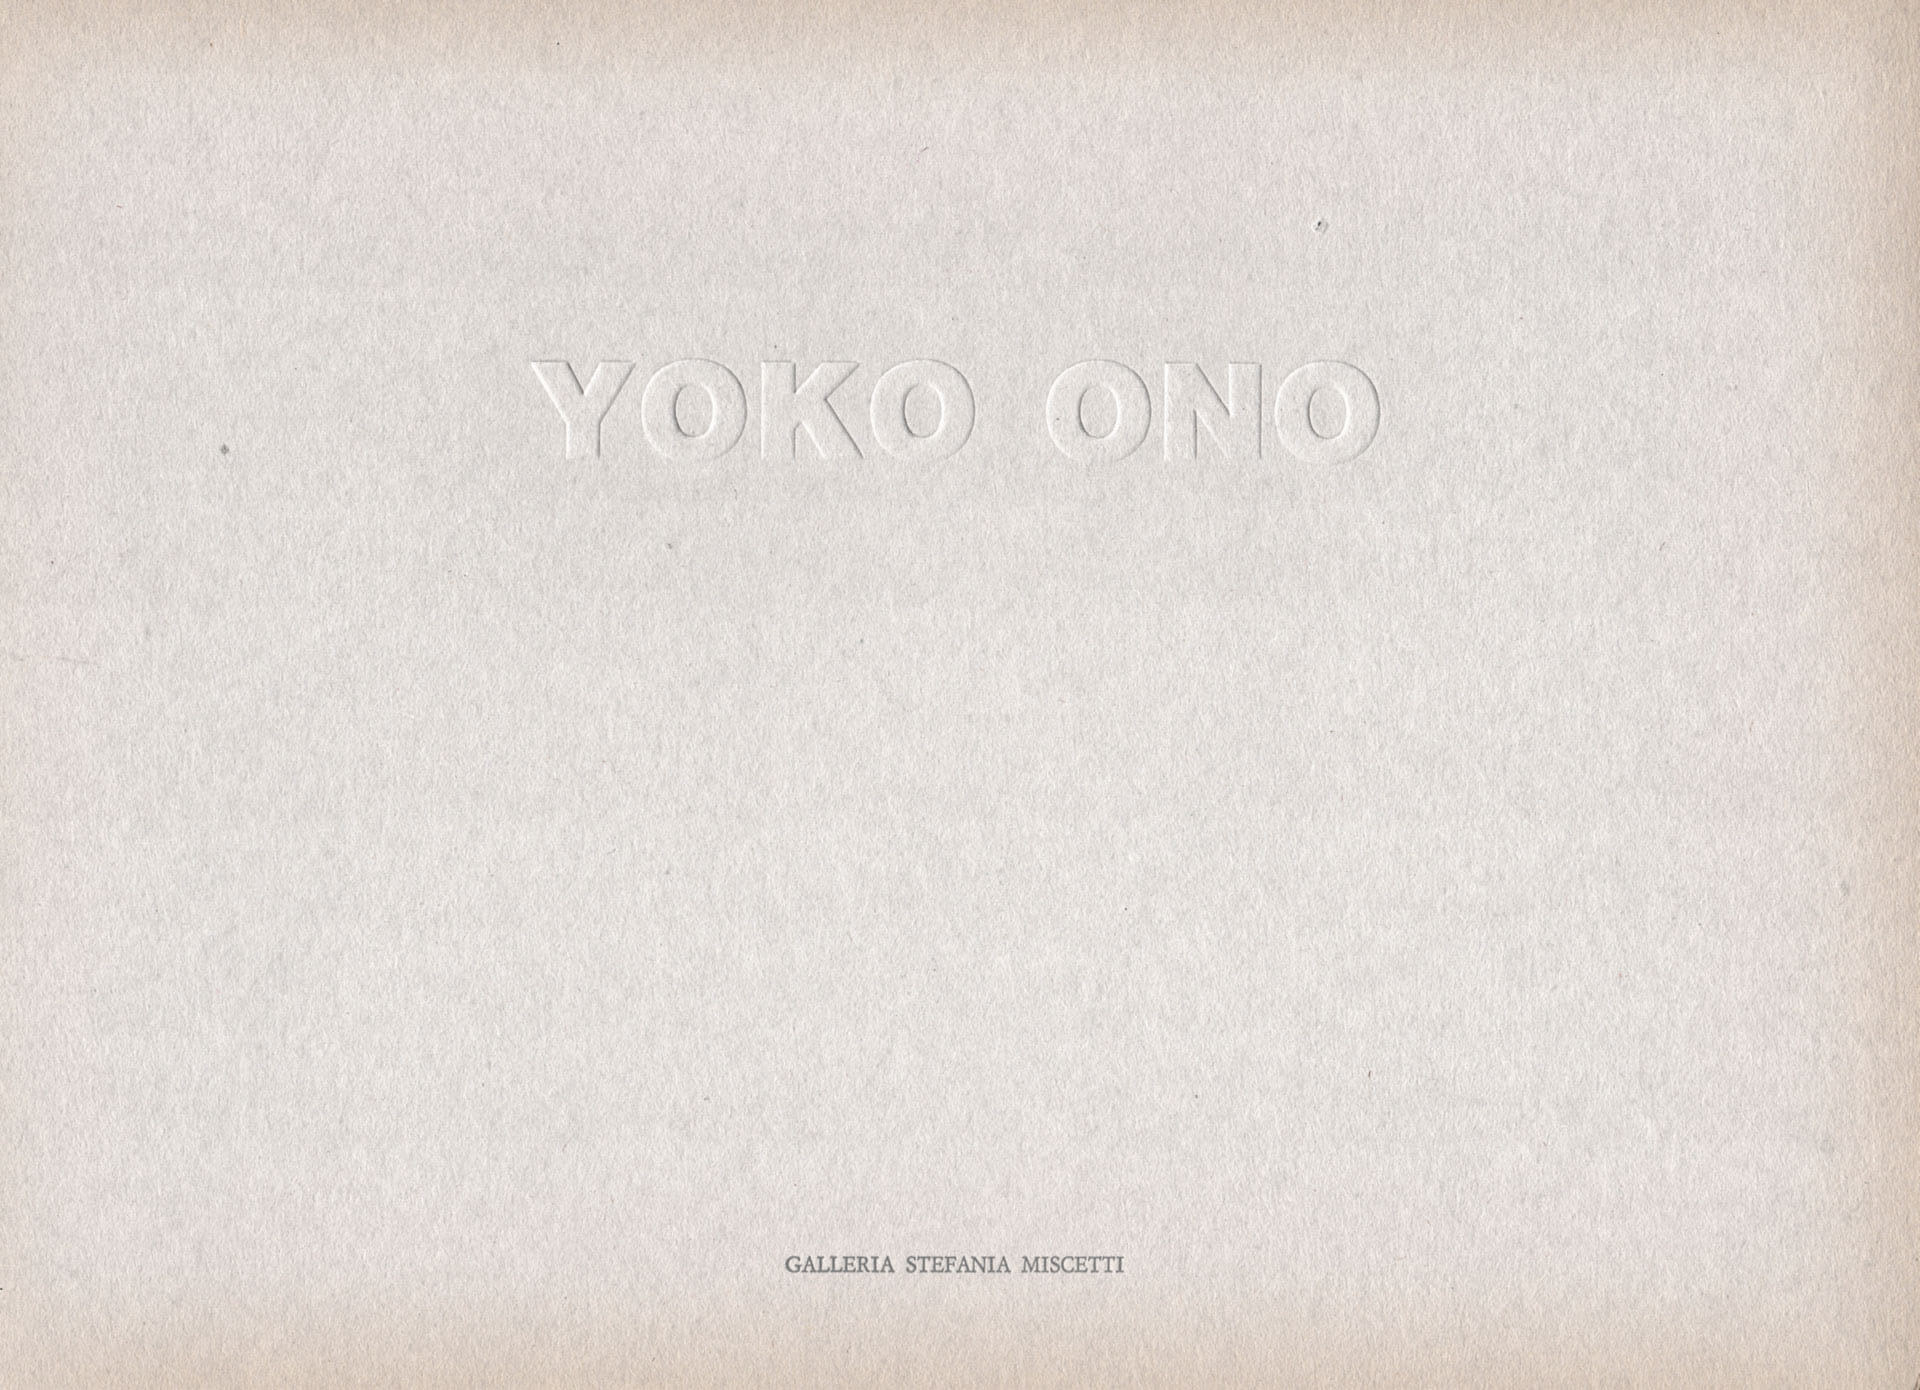 Studio Stefania Miscetti | Catalogues | Yoko Ono | A Piece of Sky